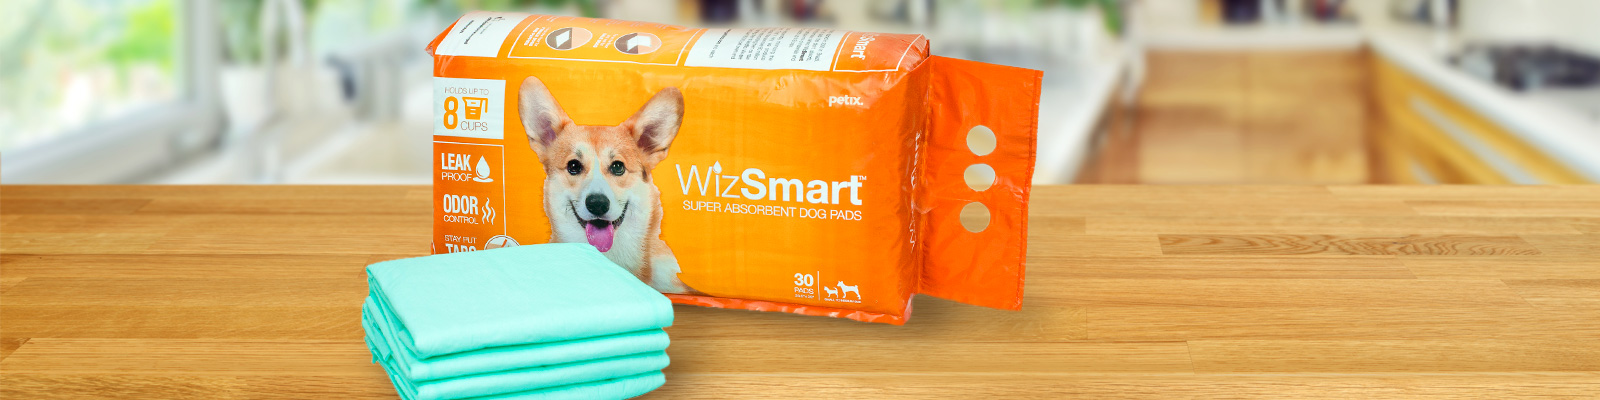 Wizsmart Pads and Package